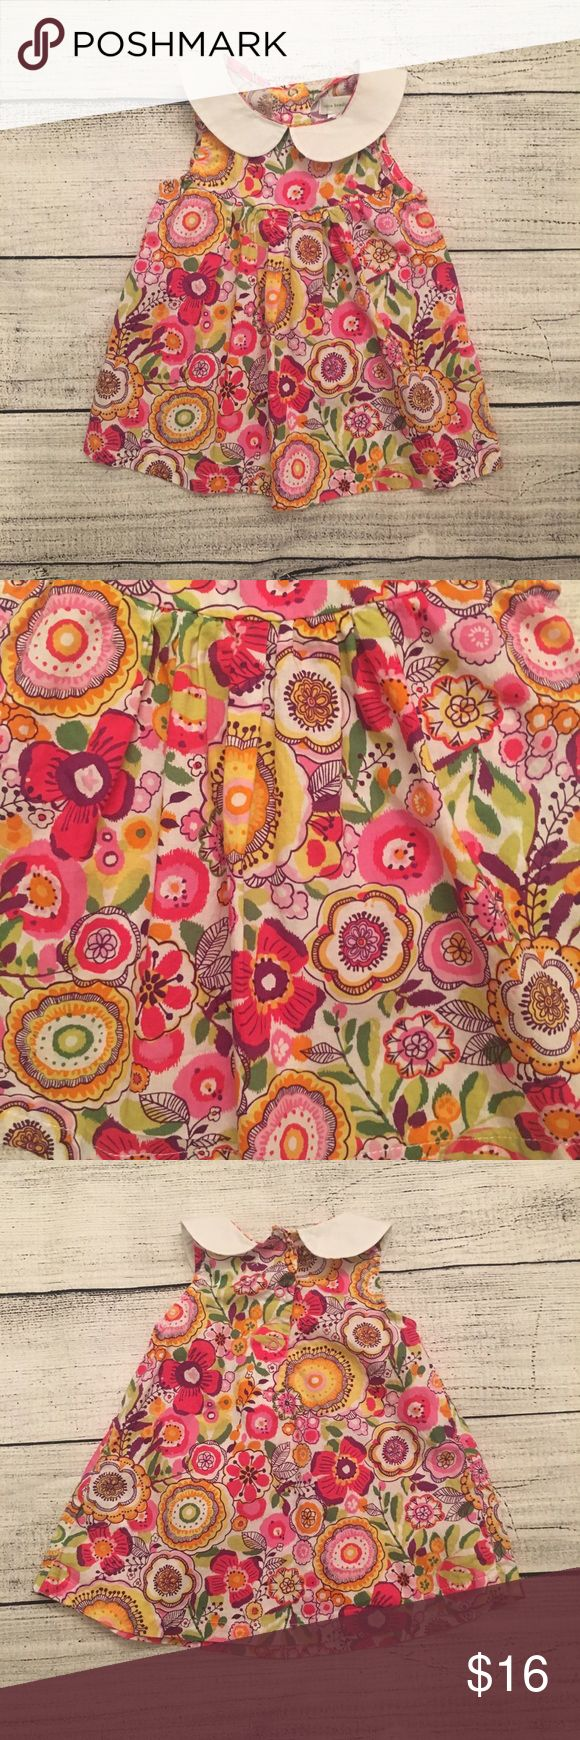 Vera Bradley Baby Bright Floral dress with Peter Pan collar. It has snaps in the back for easy on/off Vera Bradley Dresses